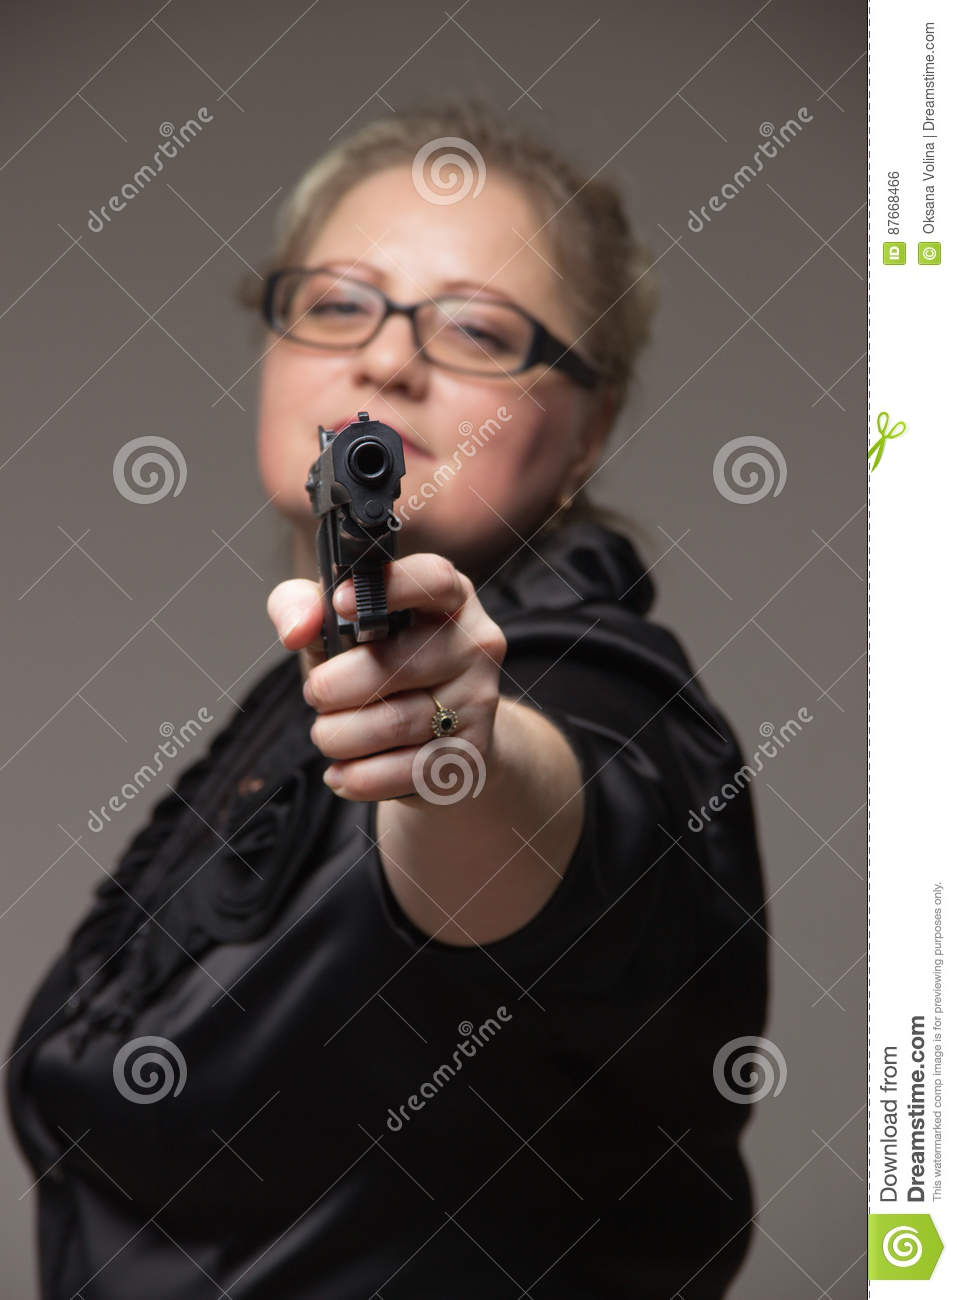 Fat Girls With Guns Png